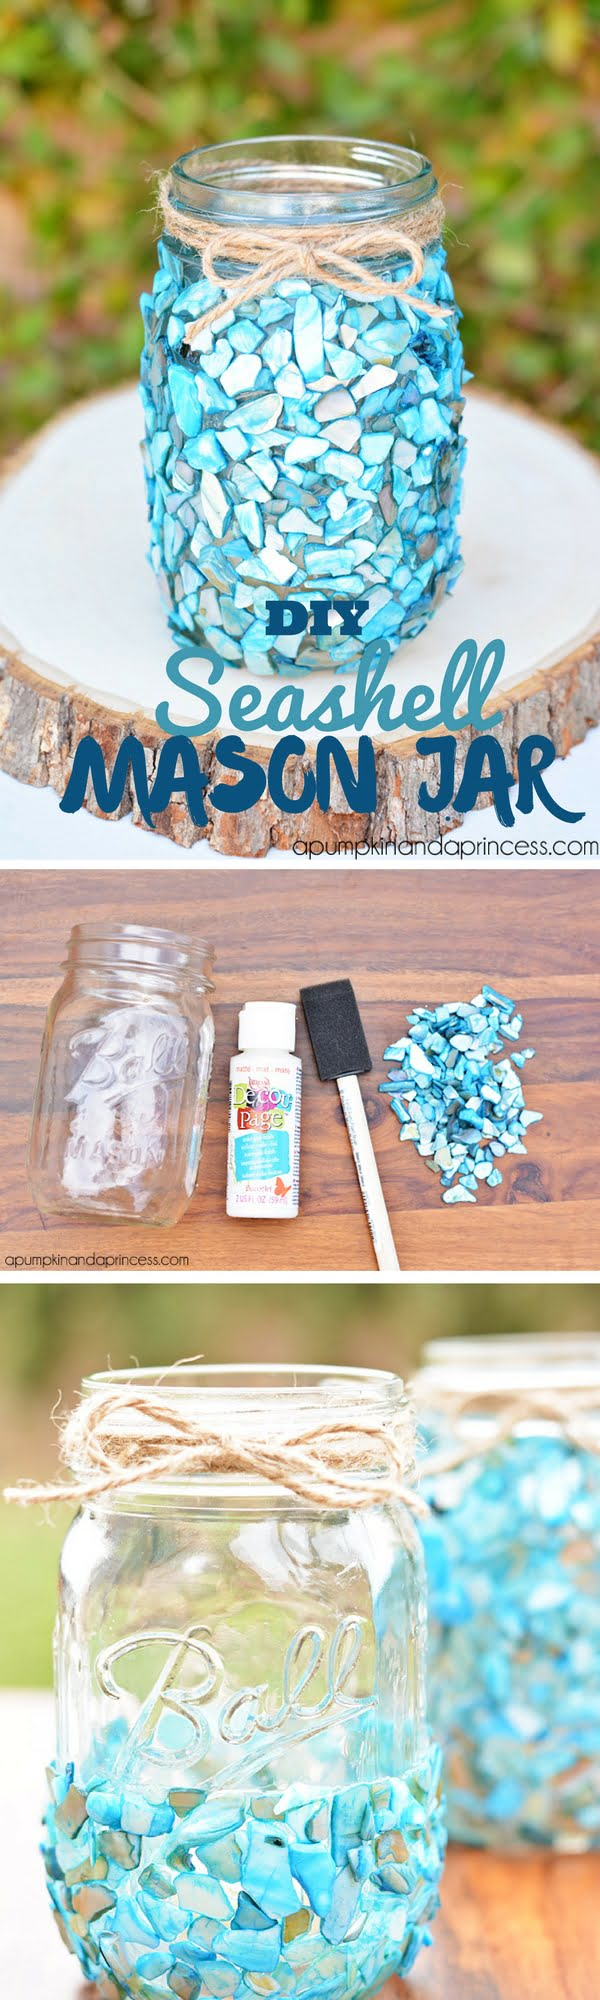 Check out the tutorial: #DIY Seashell Mason Jar